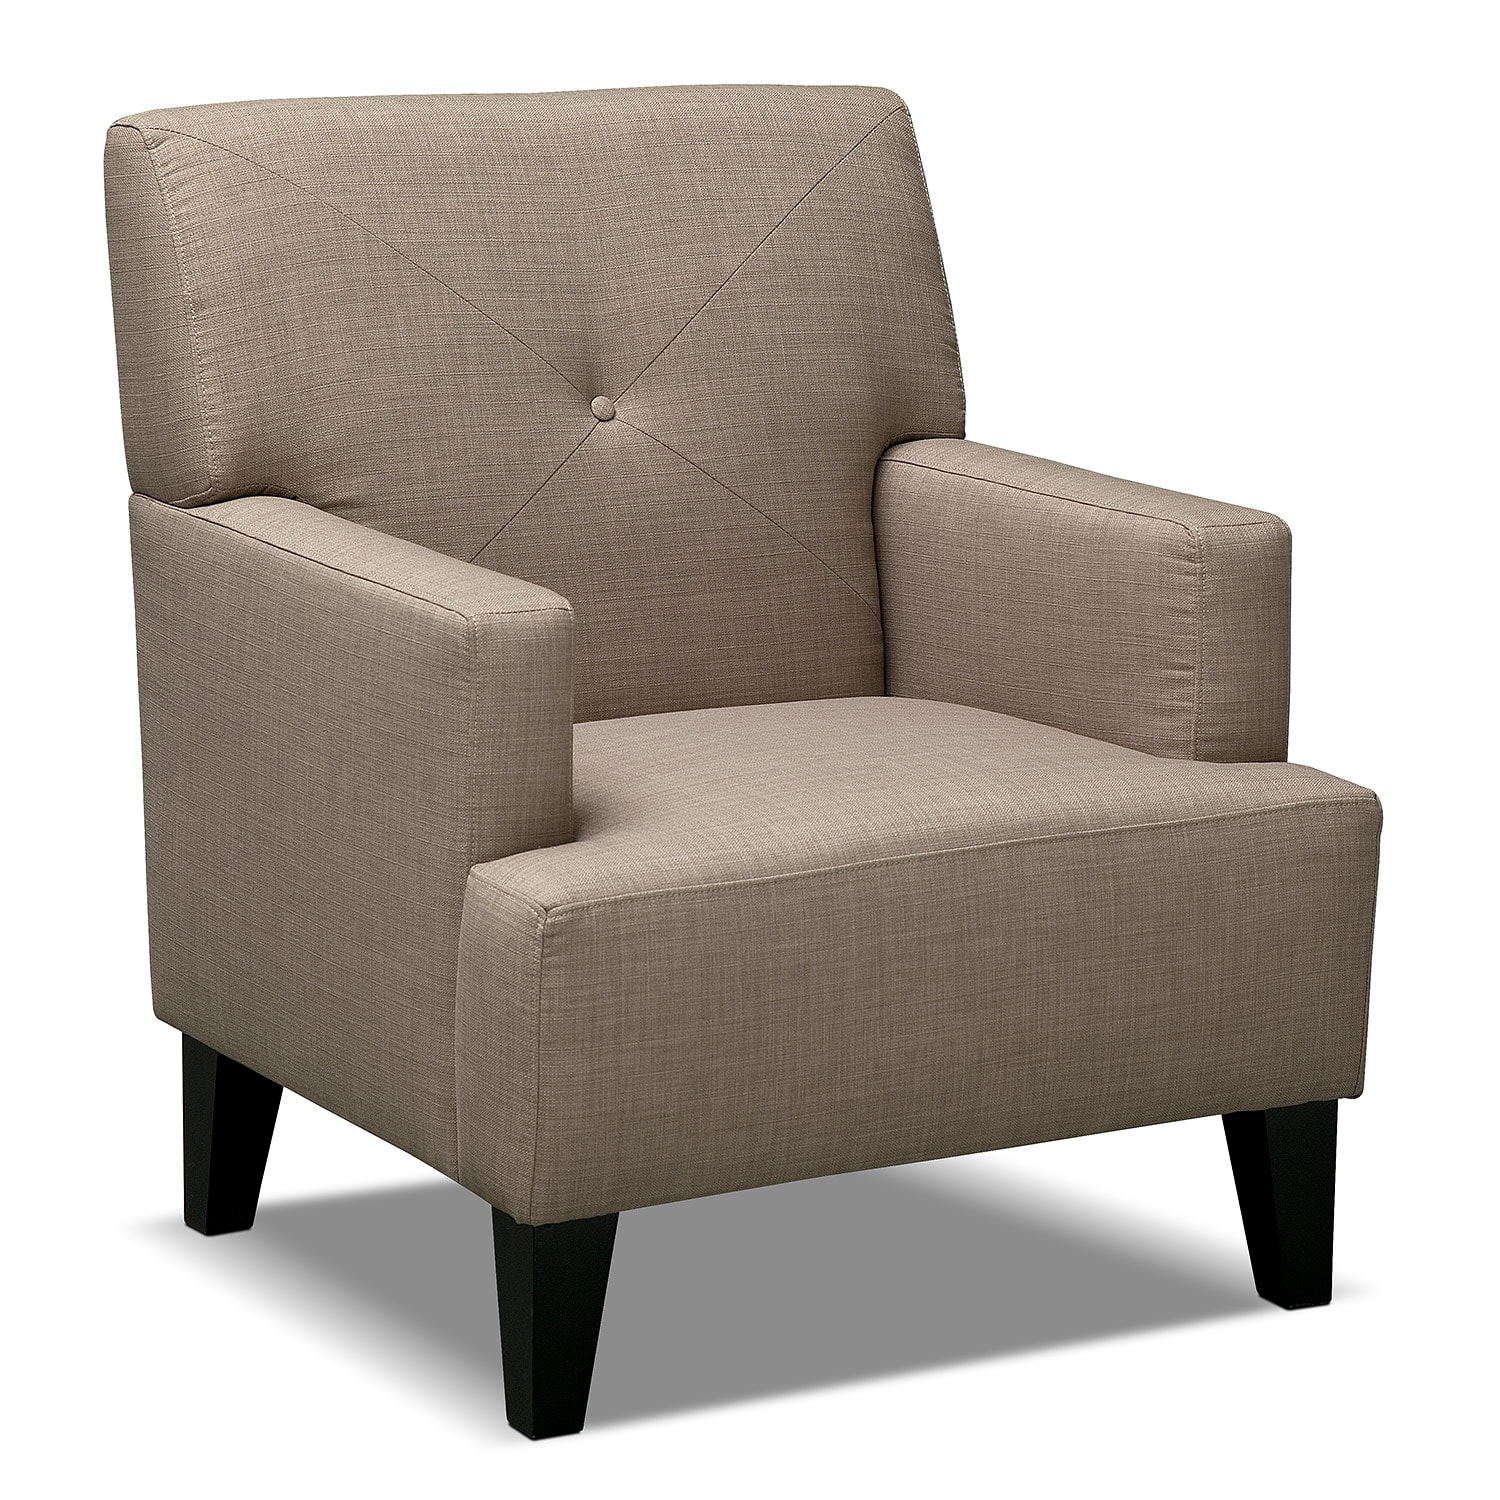 Accent Furniture For Living Room: ACCENT CHAIR-AVALON WHEAT